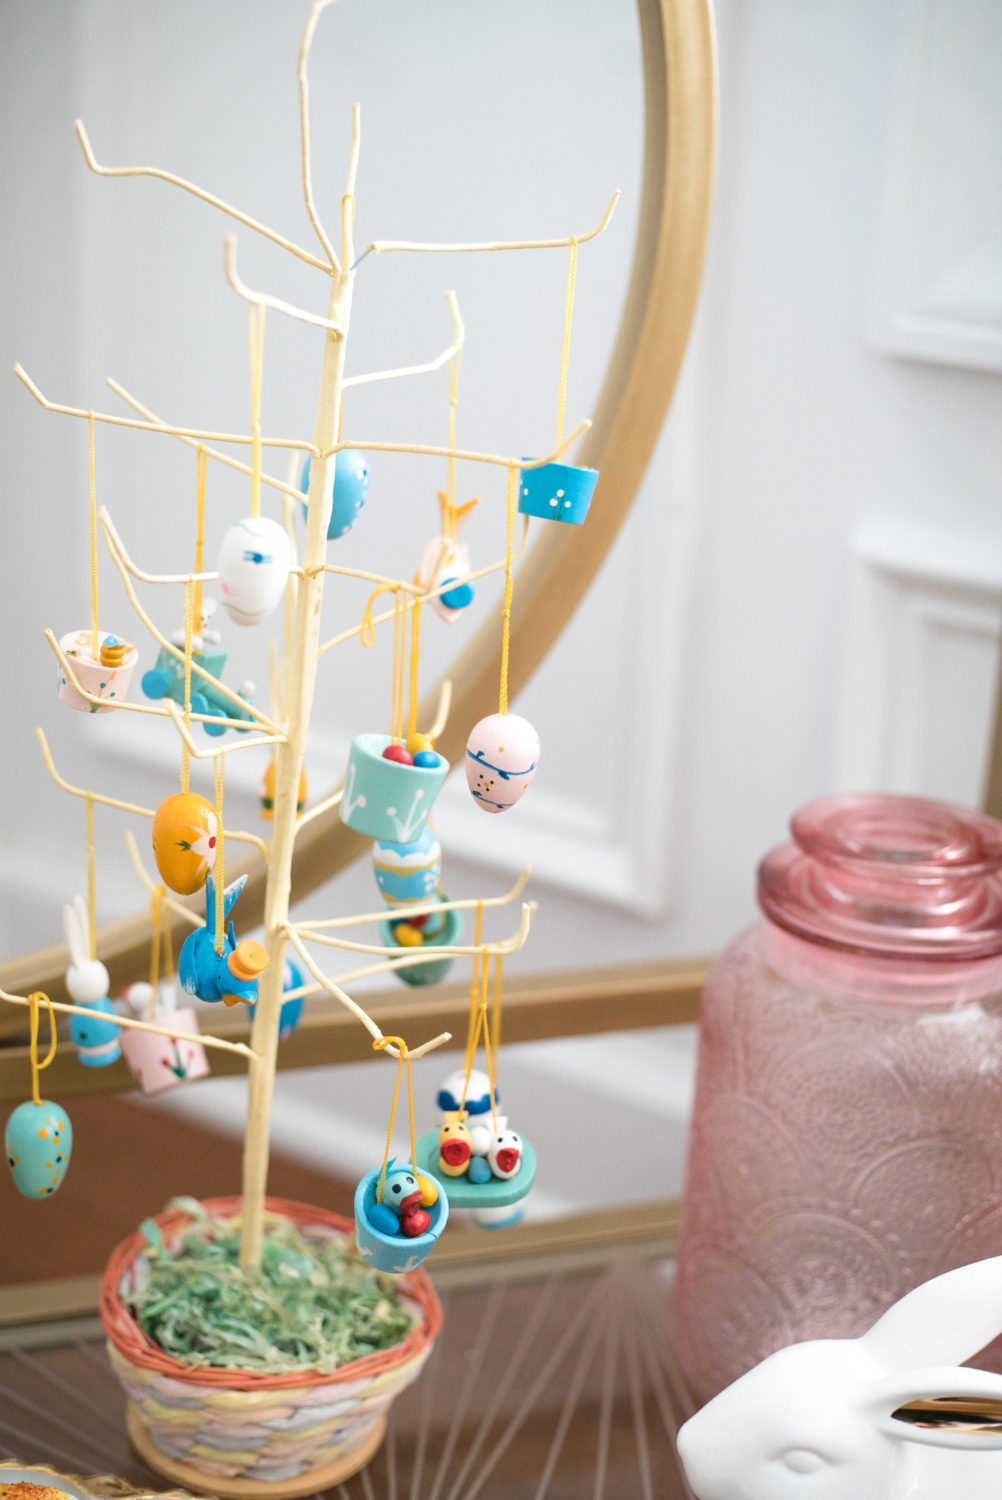 Kendall brought this vintage Easter tree home from his grandparents' house, still in its original packaging. If you've followed me a while you know I love mixing the old with the new! (That canister in the back is from the Target Dollar Spot and the print reminded me of doilies!)